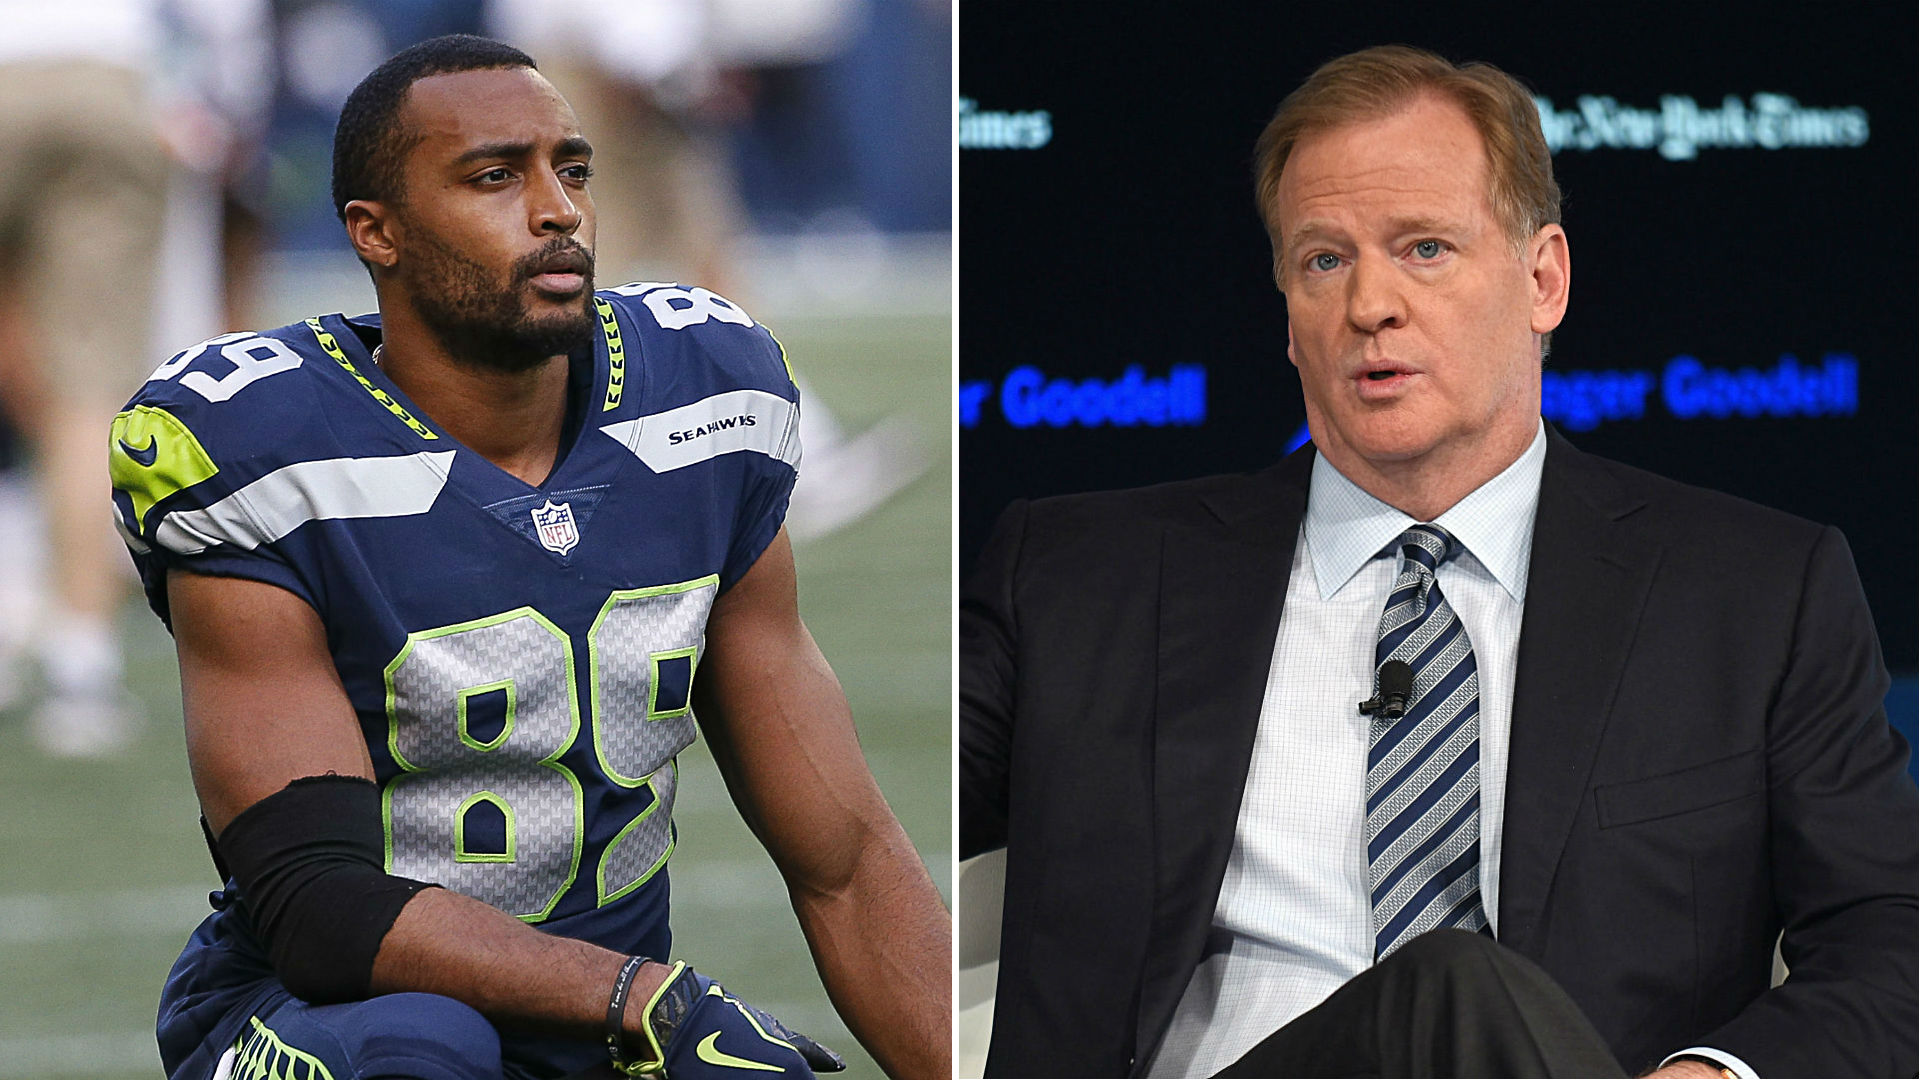 Seahawks receiver, National Football League commish tell Senate they support justice reform bill